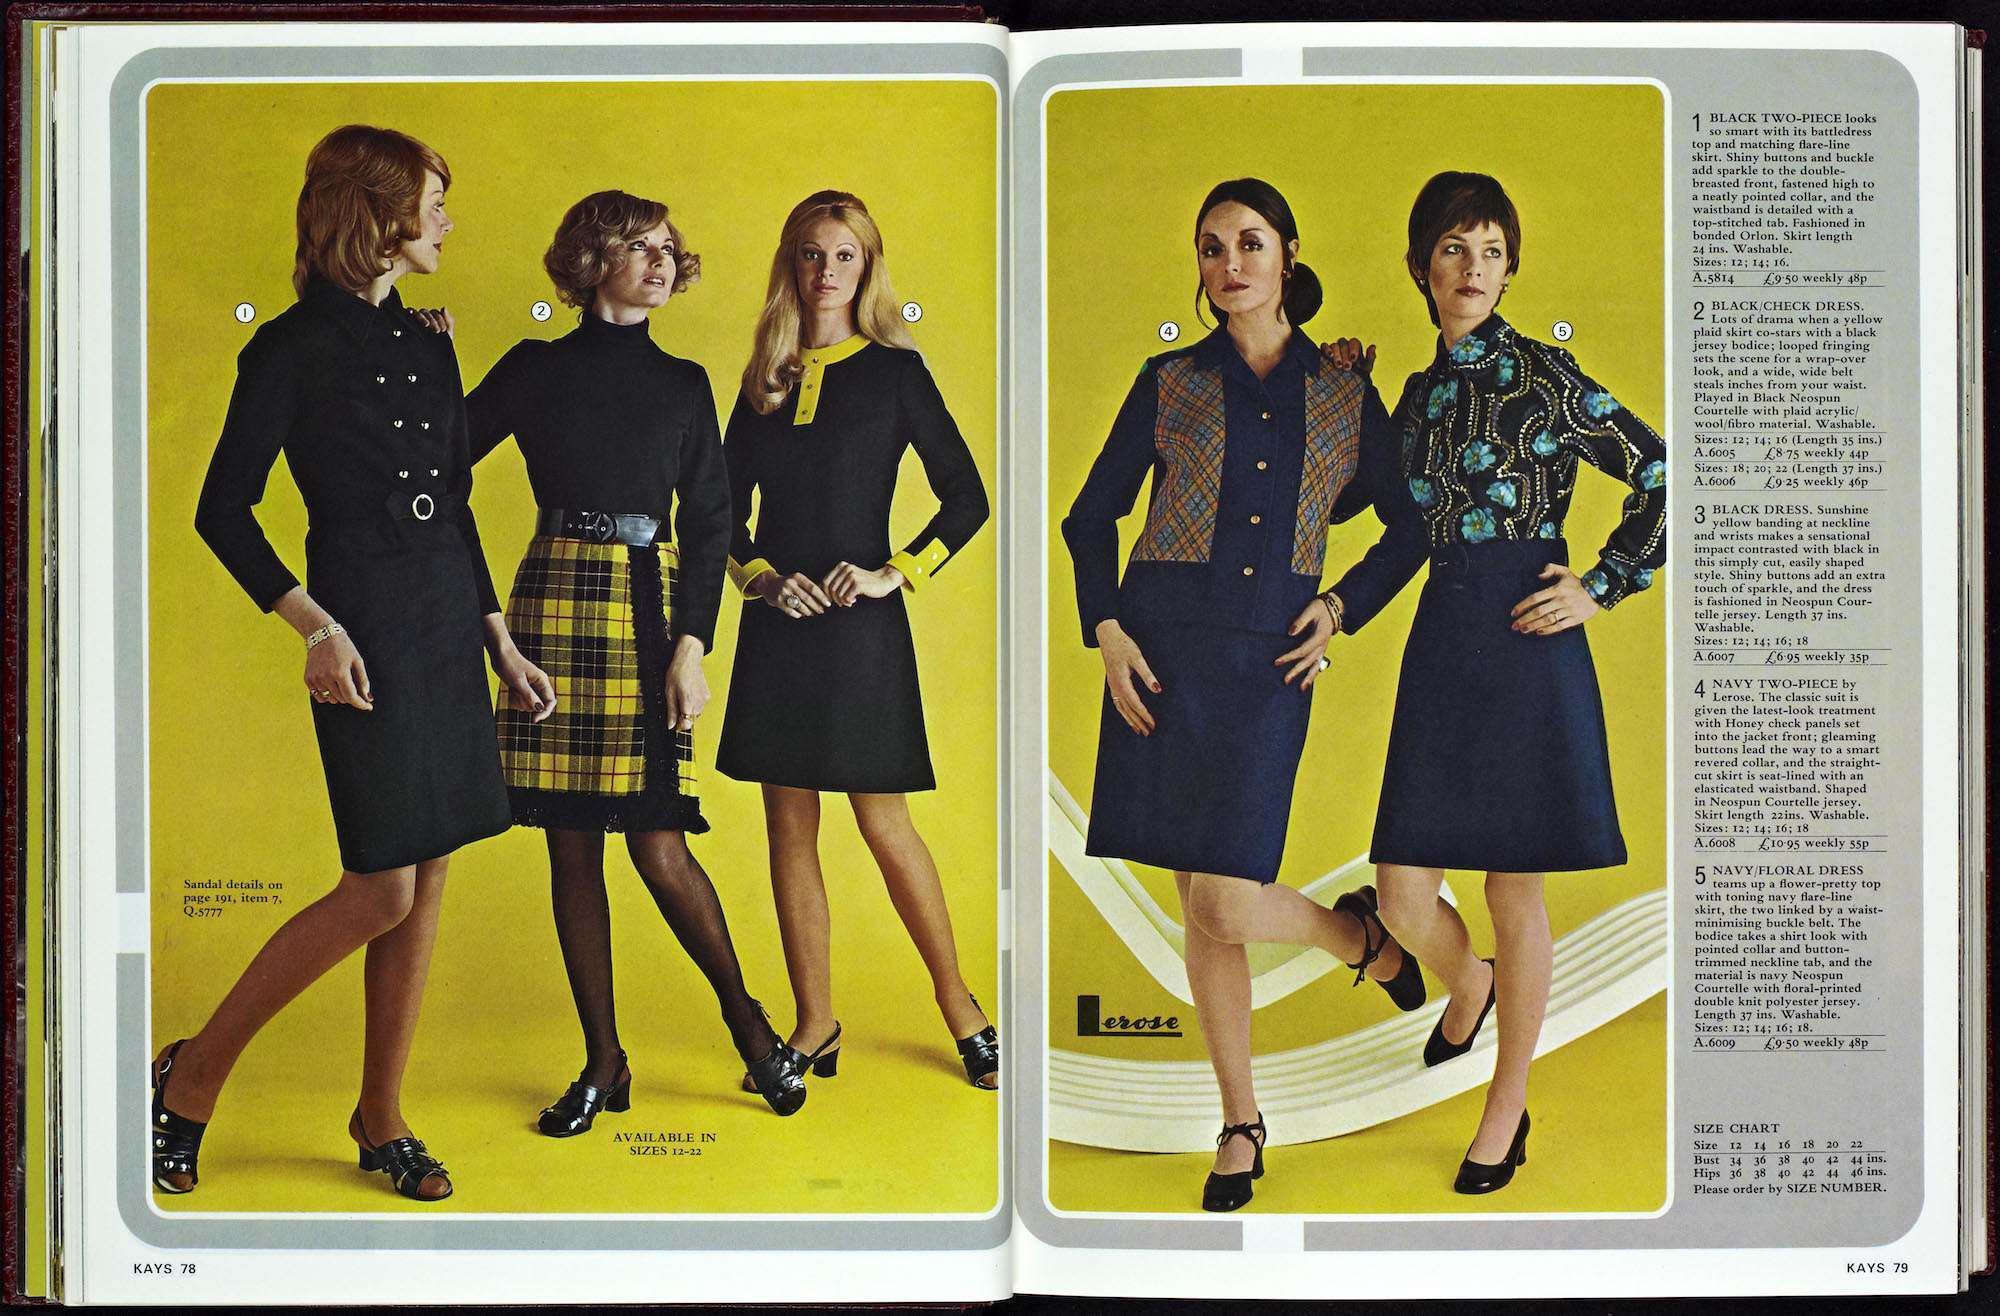 Everything Old Is New Again >> Kays Catalogue 1973 aa - Flashbak